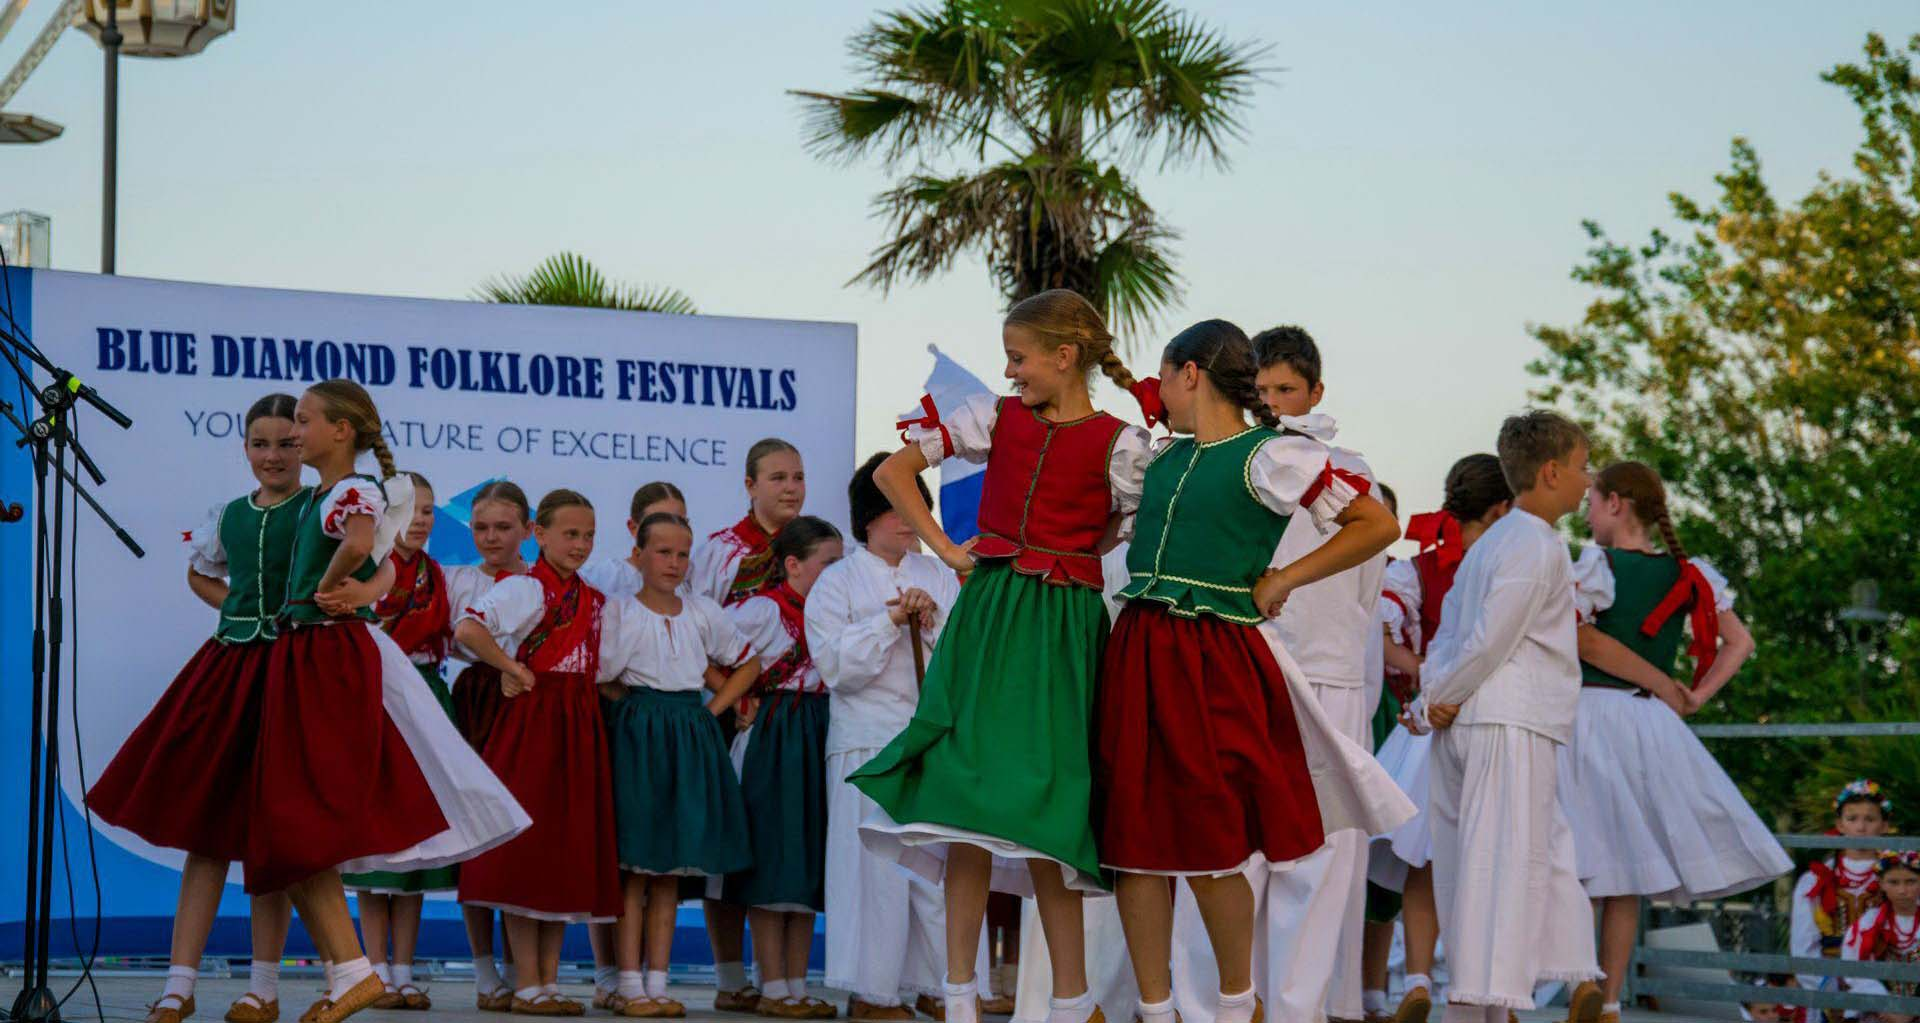 Video Archive - Folklore festivals Blue Diamond